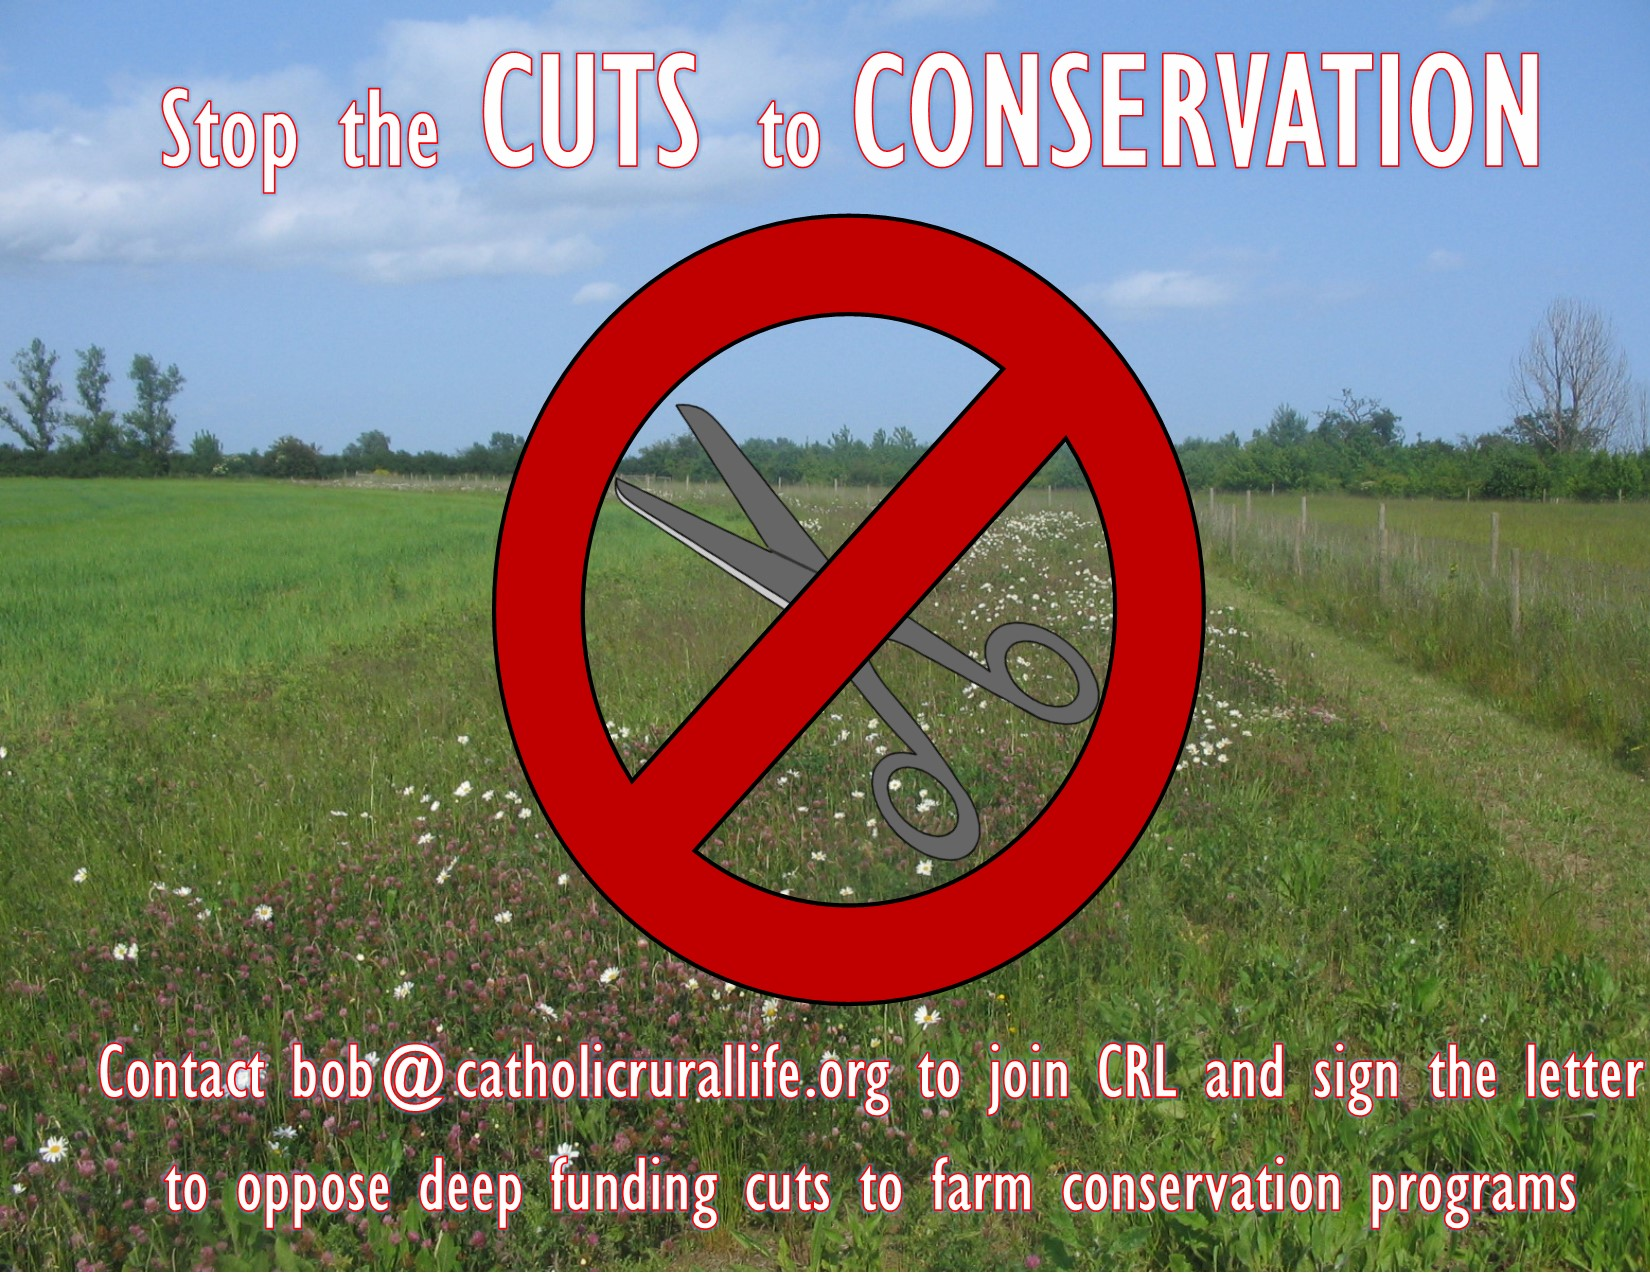 Stop Cuts to Conservation